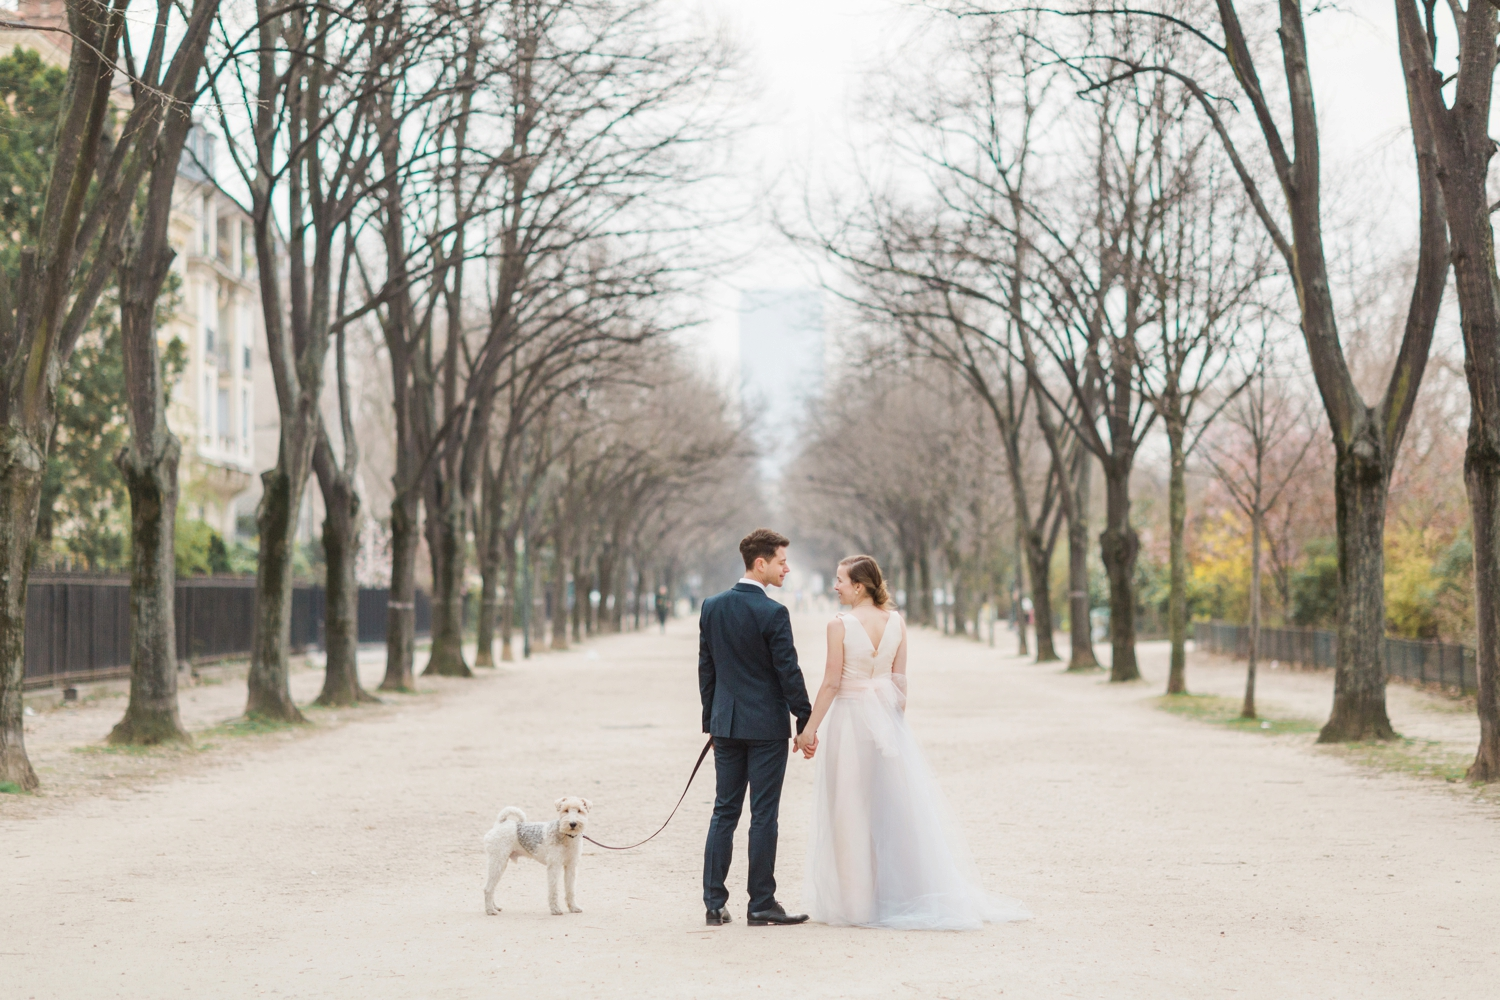 Paris-France-Wedding-Photography-Chloe-Luka-Photography_7674.jpg